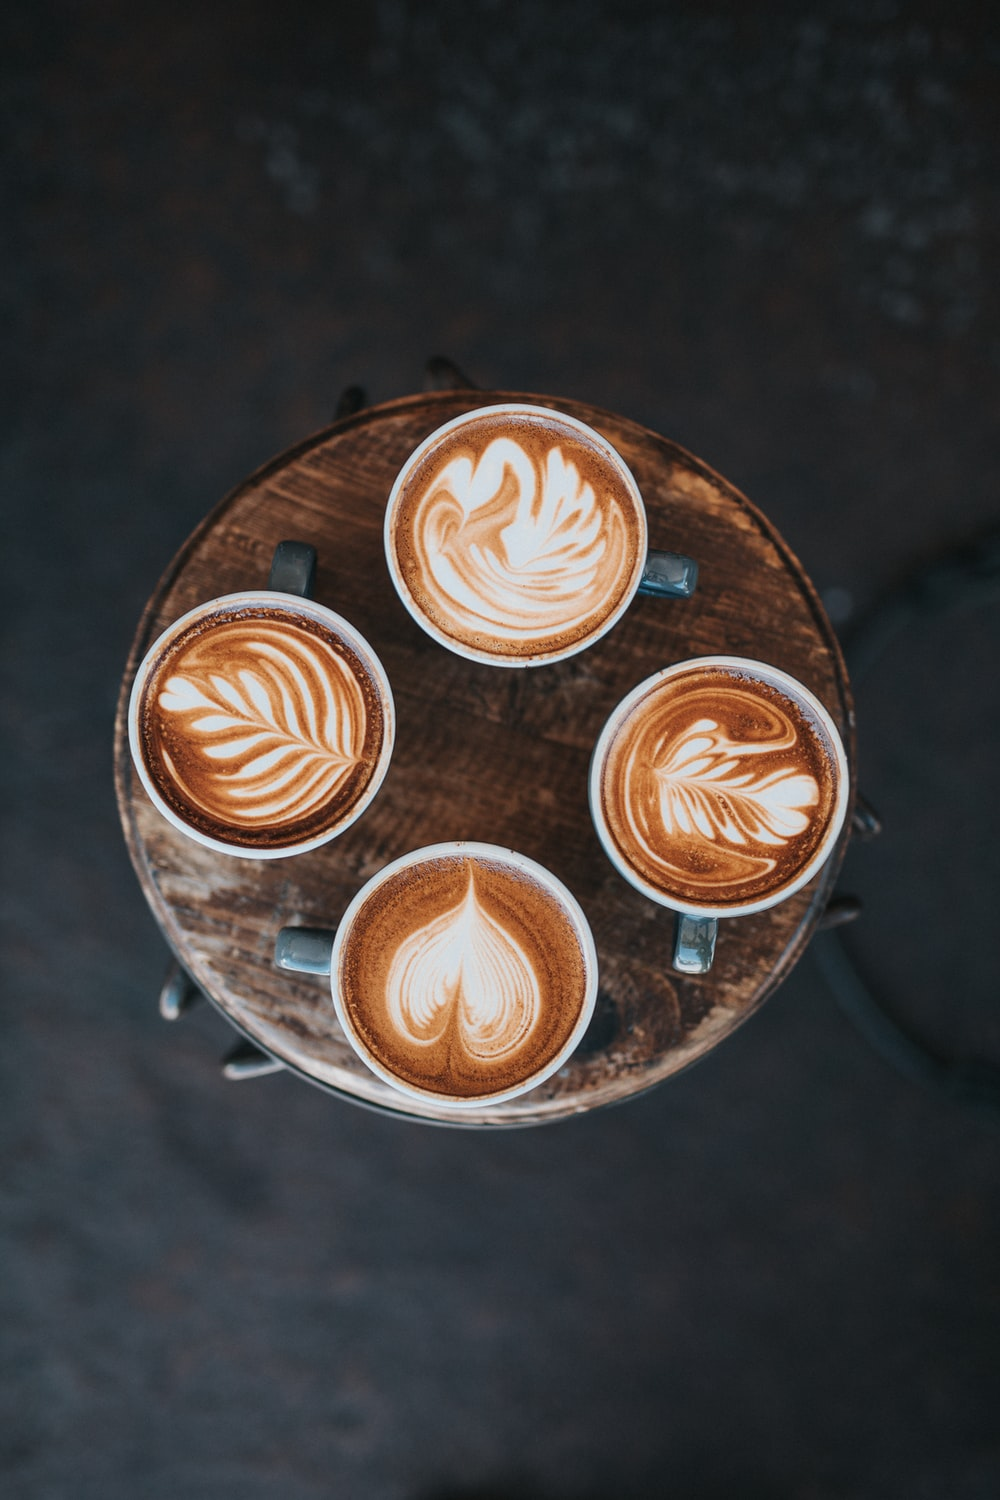 Latte Pictures | Download Free Images on Unsplash